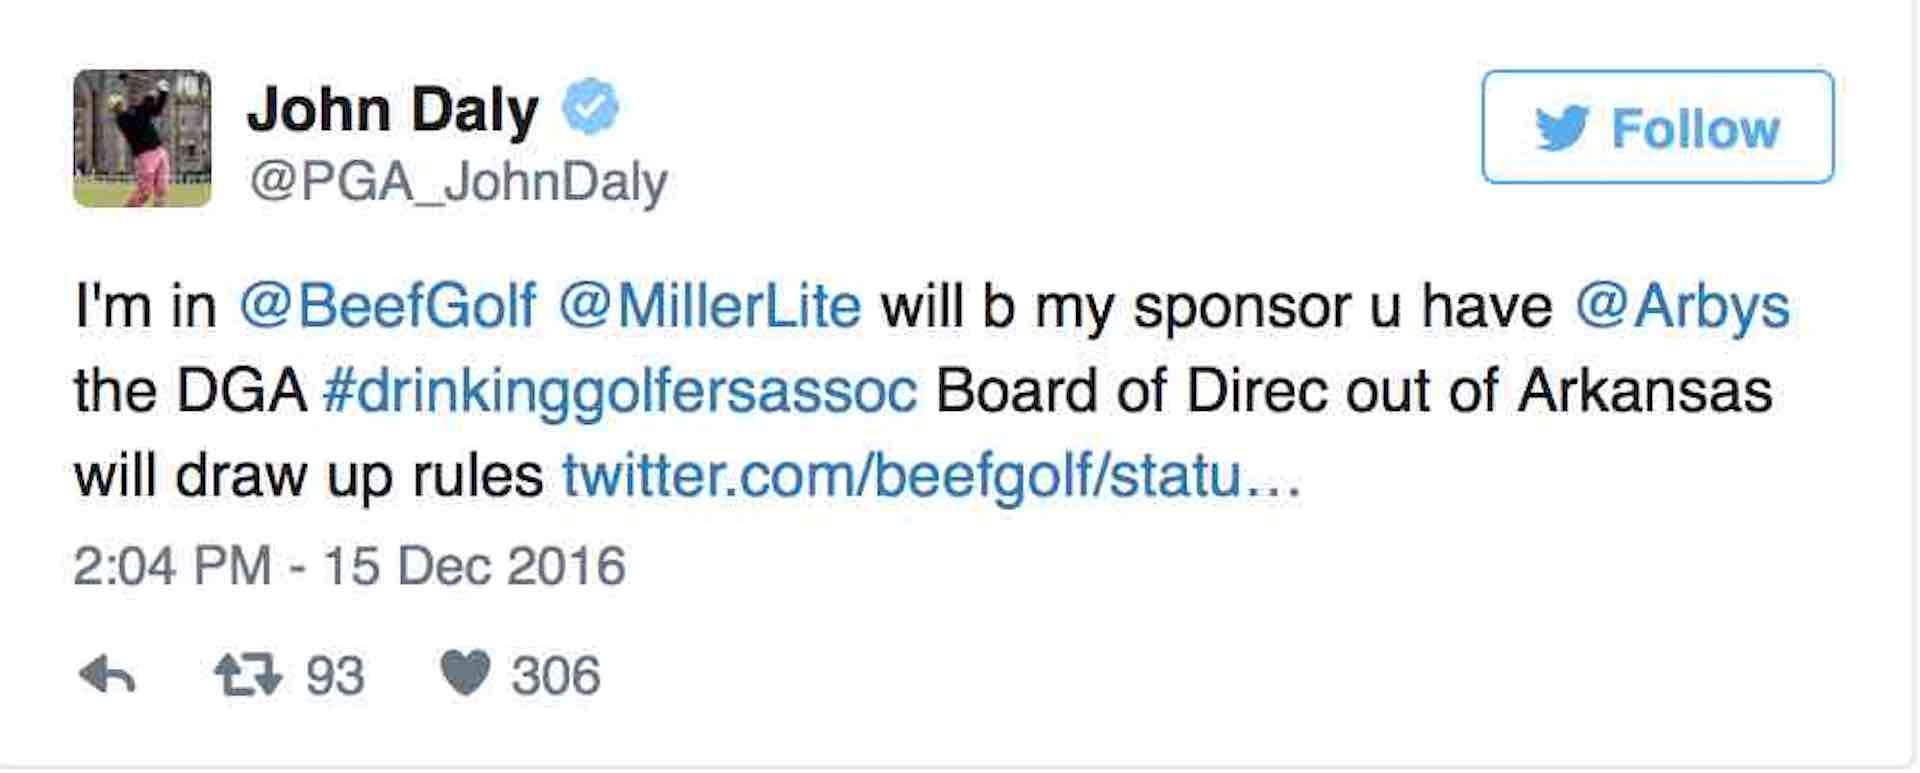 Is John Daly up for Birdies Beef and Beer Triathlon?